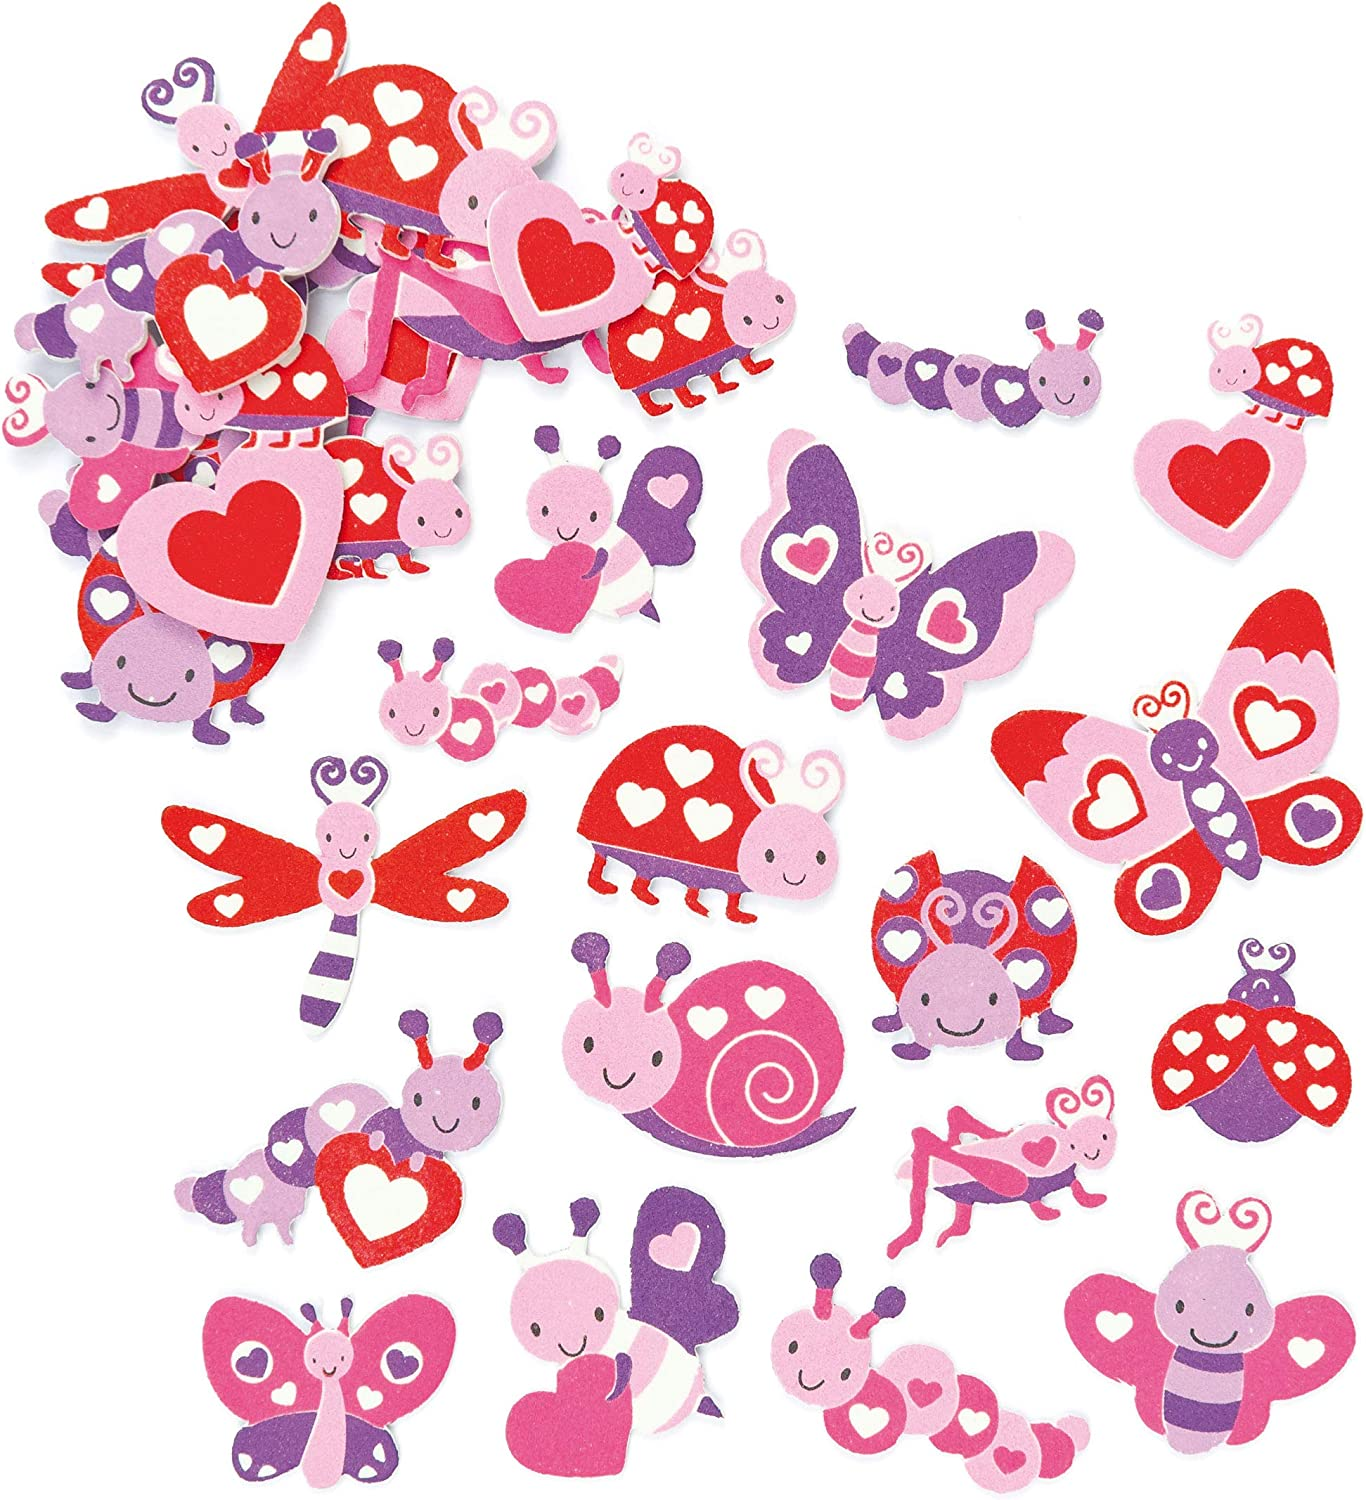 Baker Ross Love Bug Foam Stickers (Pack of 120) for Kids to Decorate Collage Cards & Craft